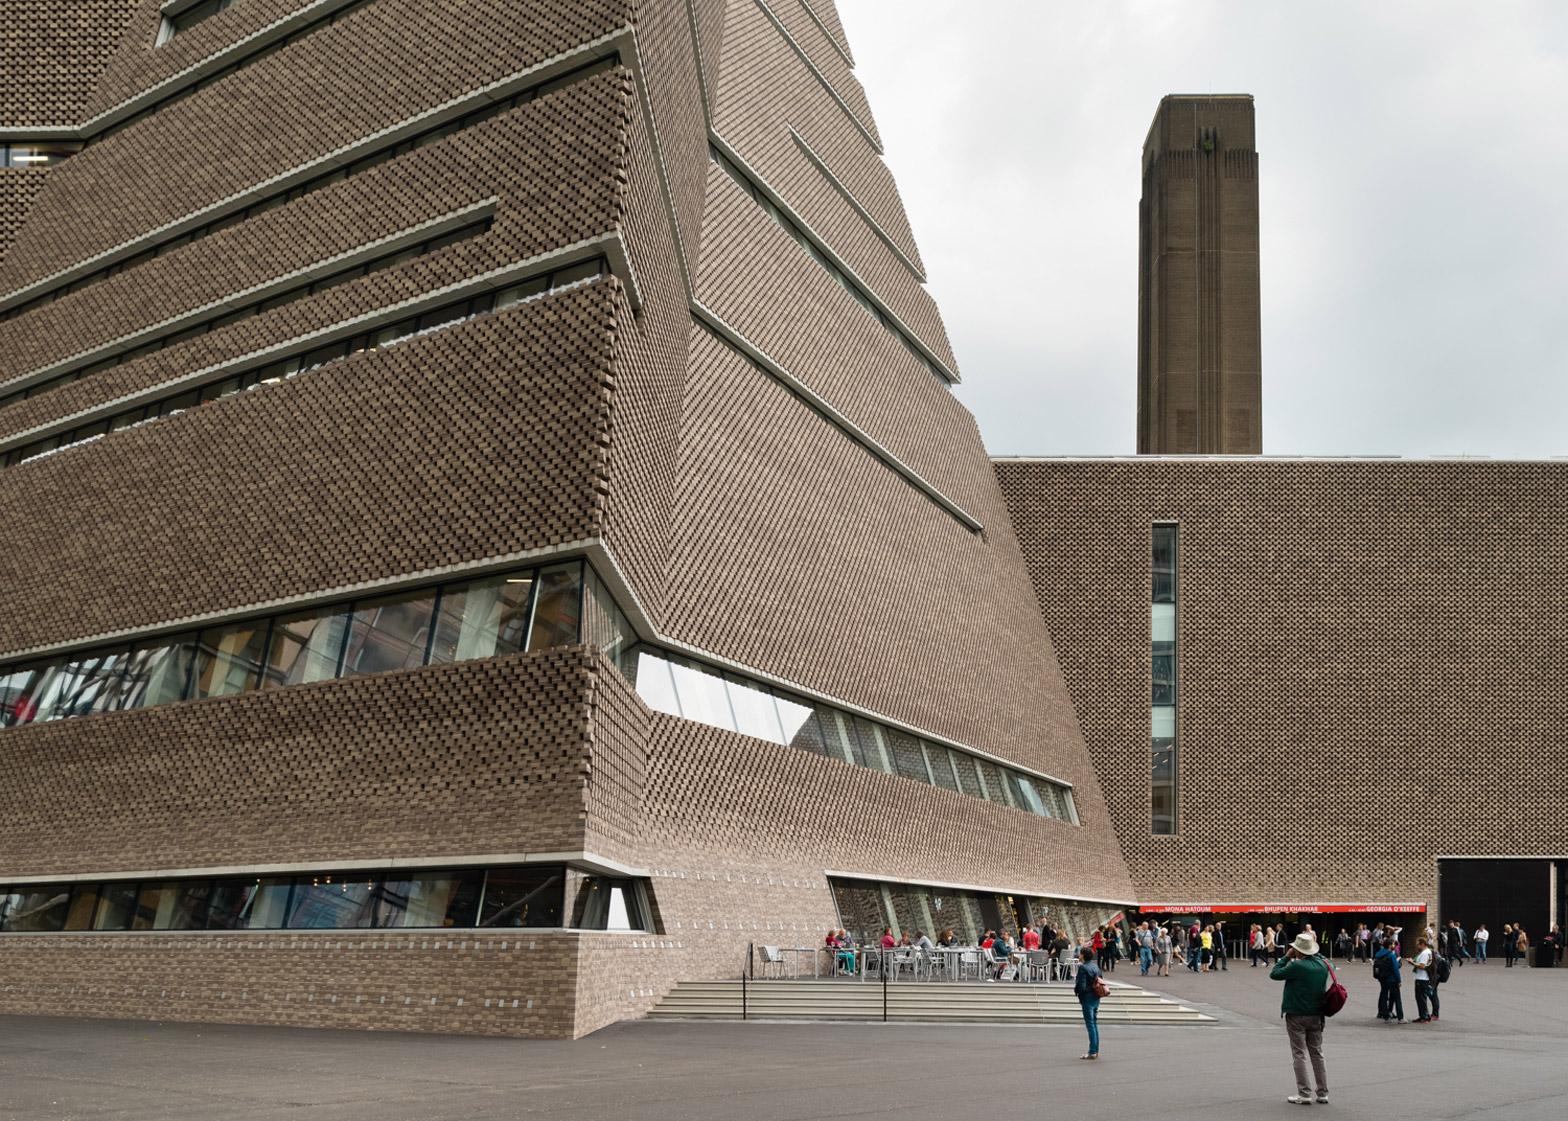 tate modern International and modern contemporary art - exhibitions, free displays and events  daily.